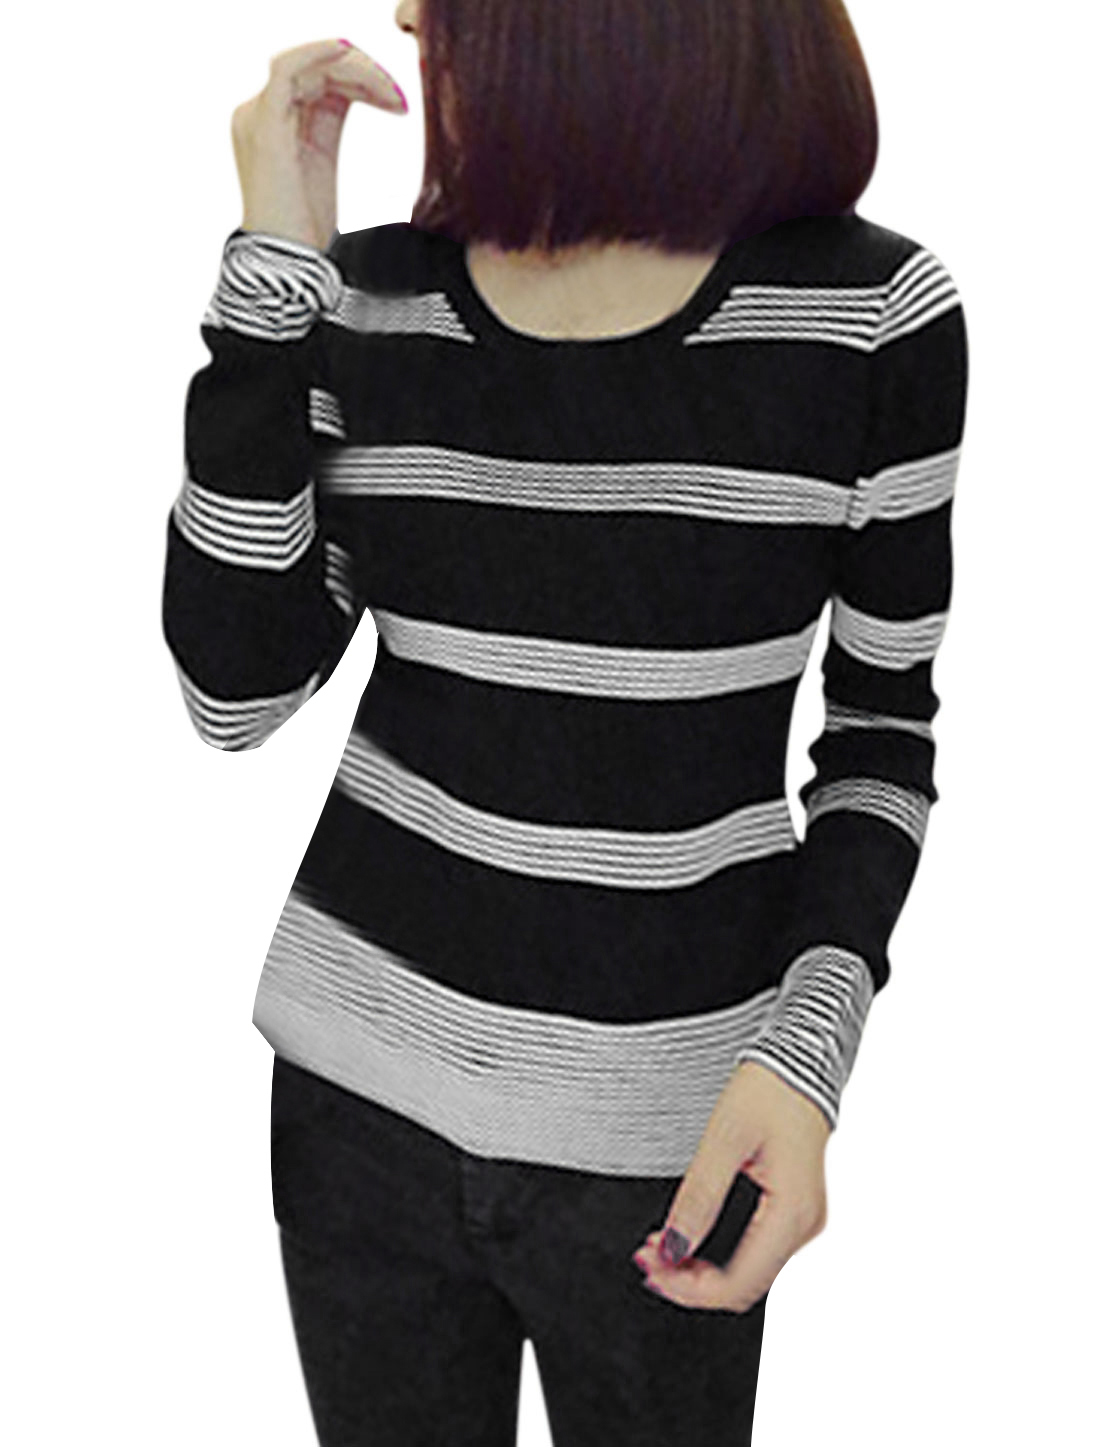 Round Neck Horizontal Stripes Casual Knit Shirt for Women Black XS